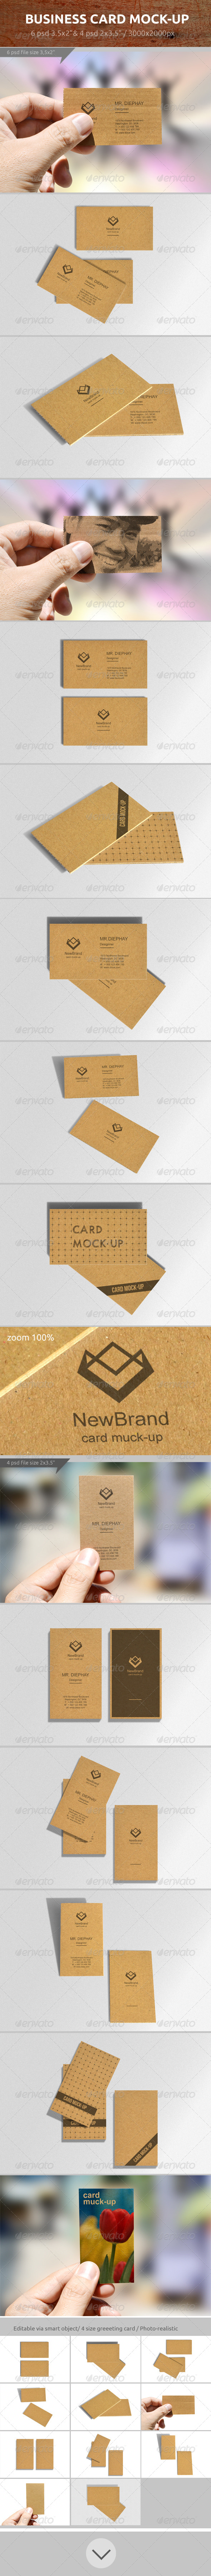 GraphicRiver Business Card Mock-up 7173474